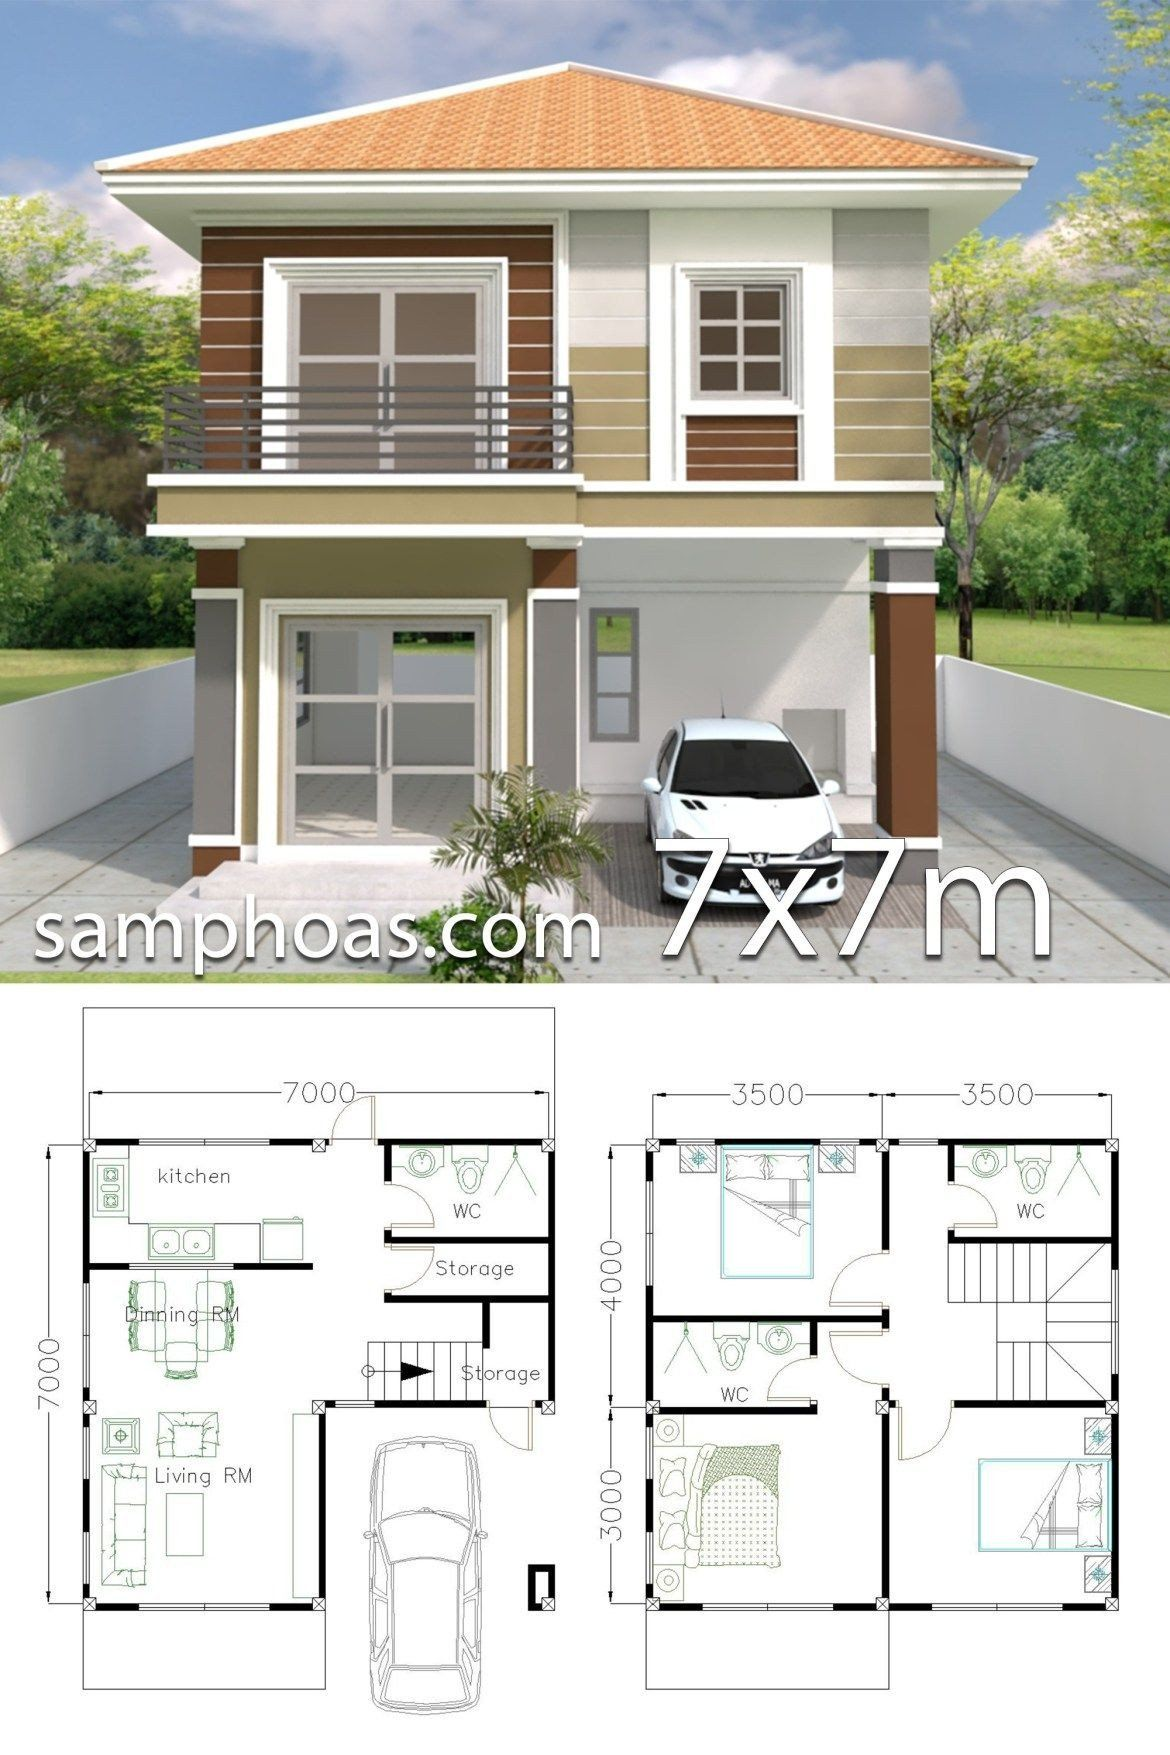 Small Modern House Plans Two Floors Home Design Plan 7x7m With 3 Bedrooms In 2020 Small House Design Plans Small Modern House Plans Duplex House Design